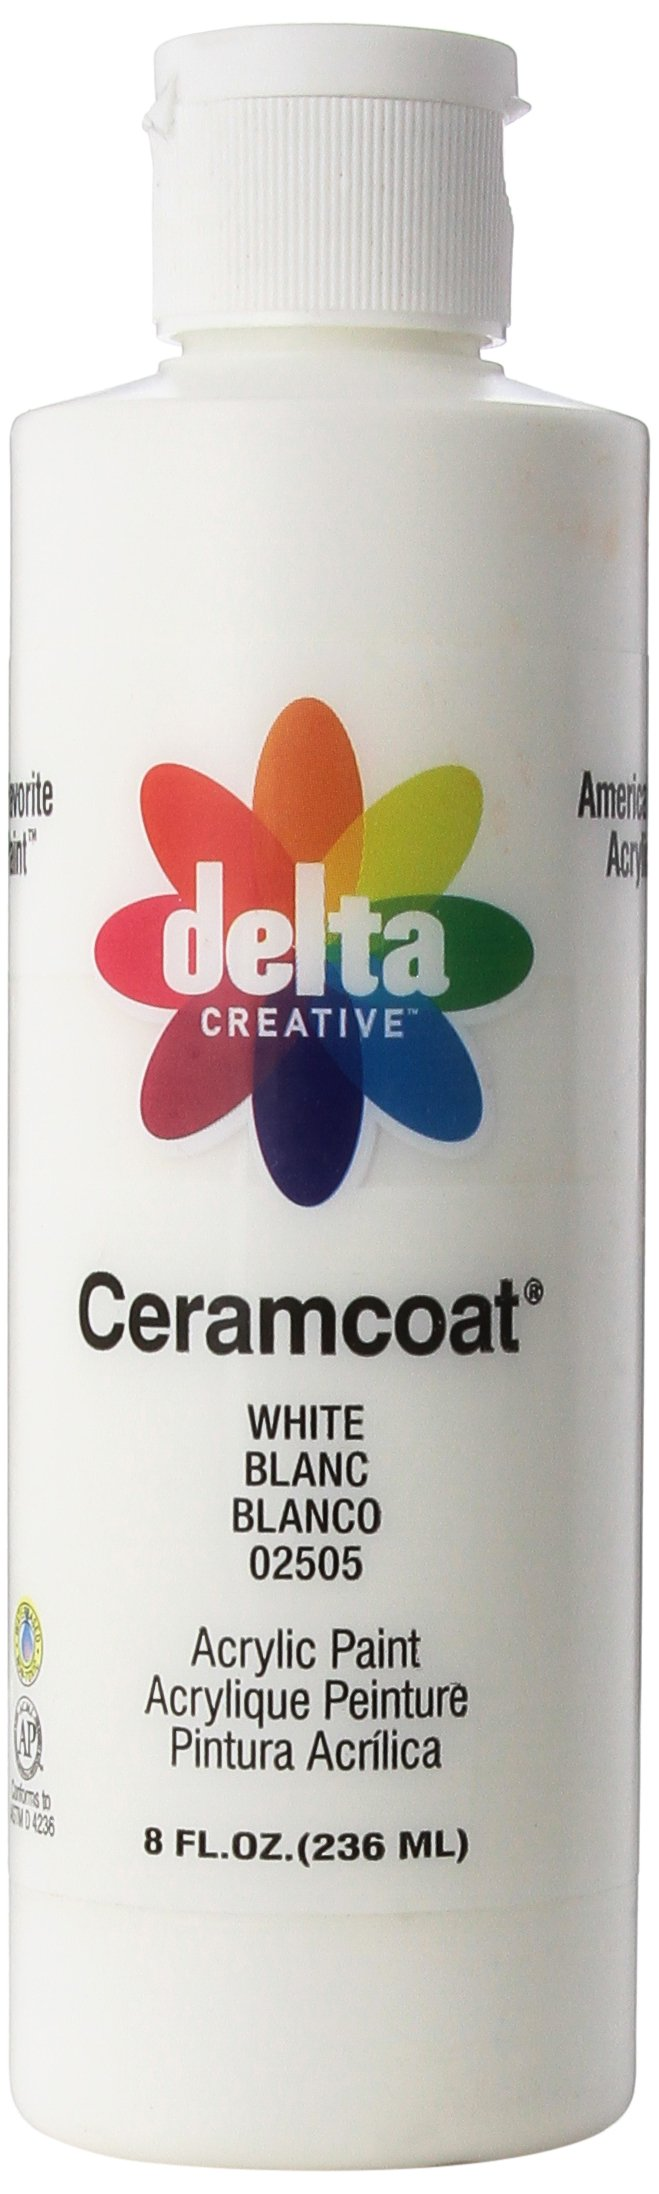 Delta Creative Ceramcoat Acrylic Paint in Assorted Colors (8 oz), 025058, White